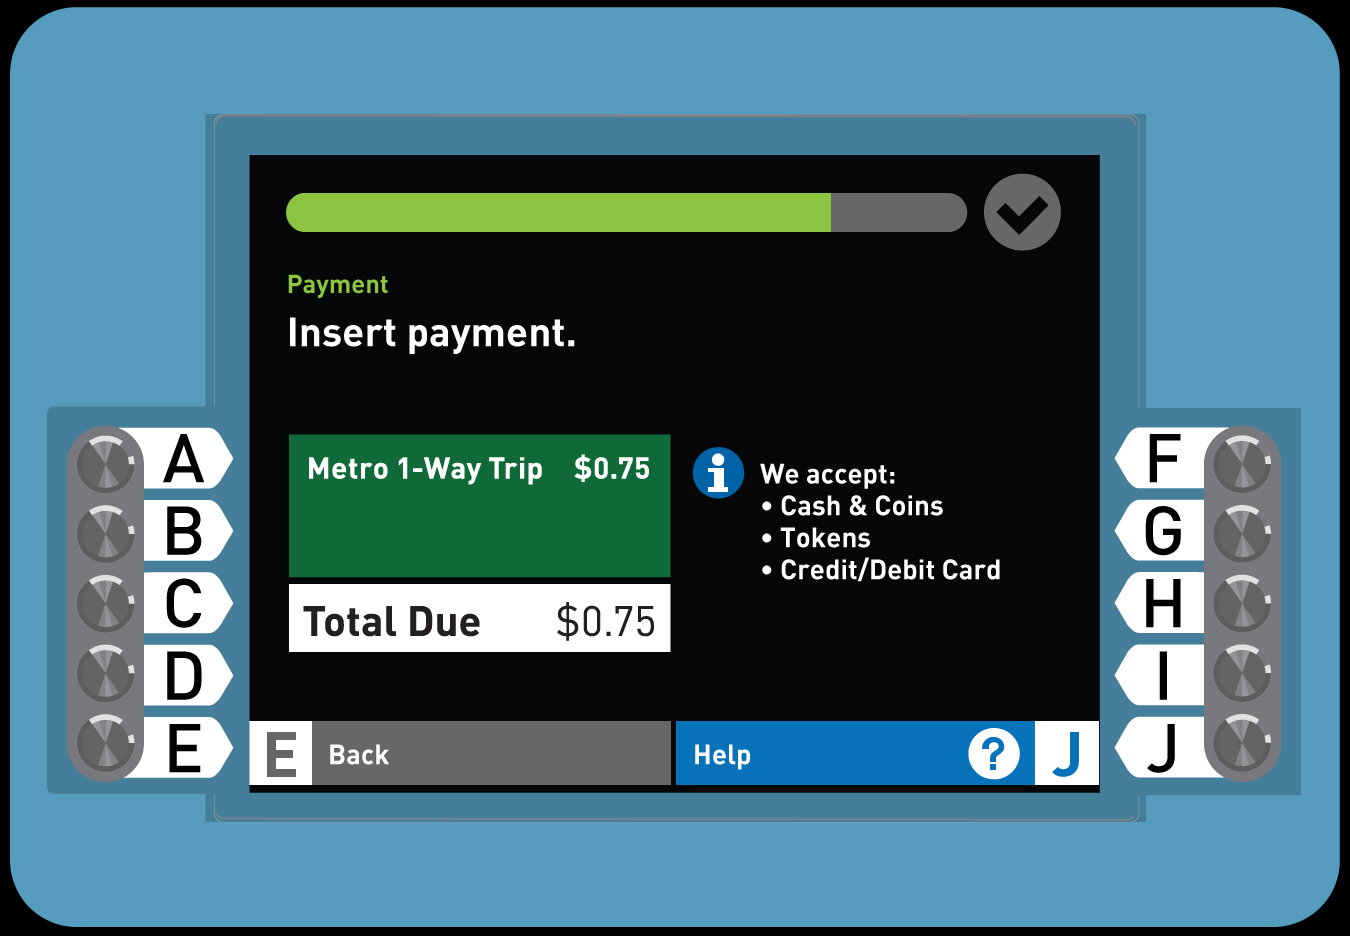 <p>6. How to Load Senior TAP card with 1-Way Fare</p>